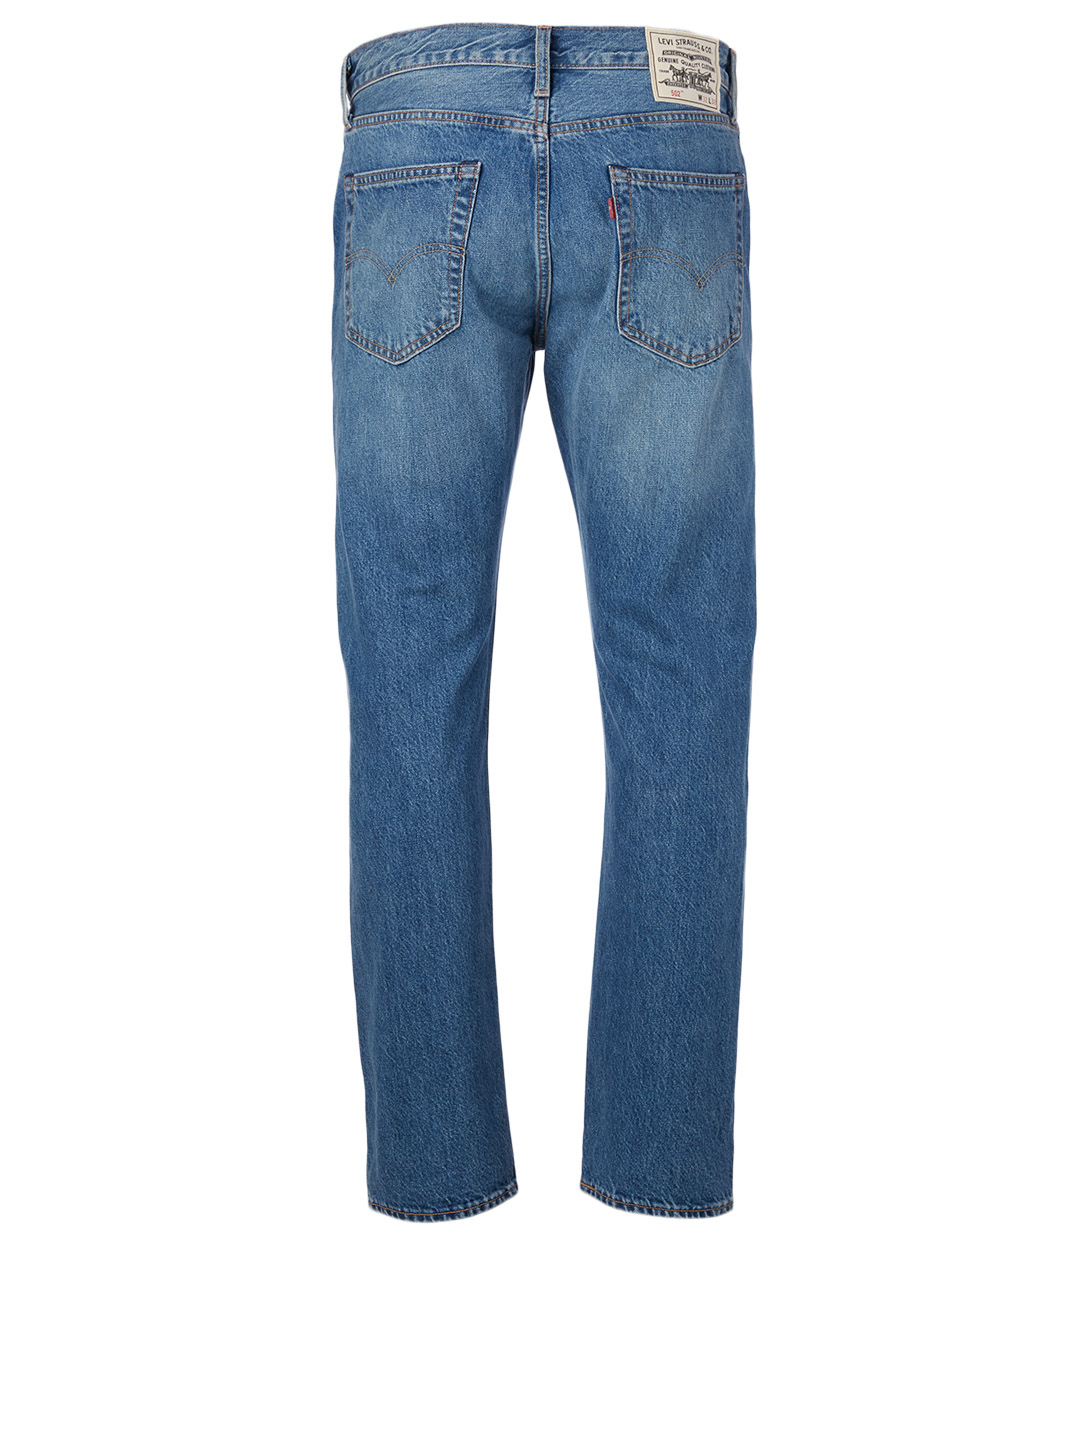 LEVI'S Wellthread™ X 502™ Tapered Jeans Men's Blue